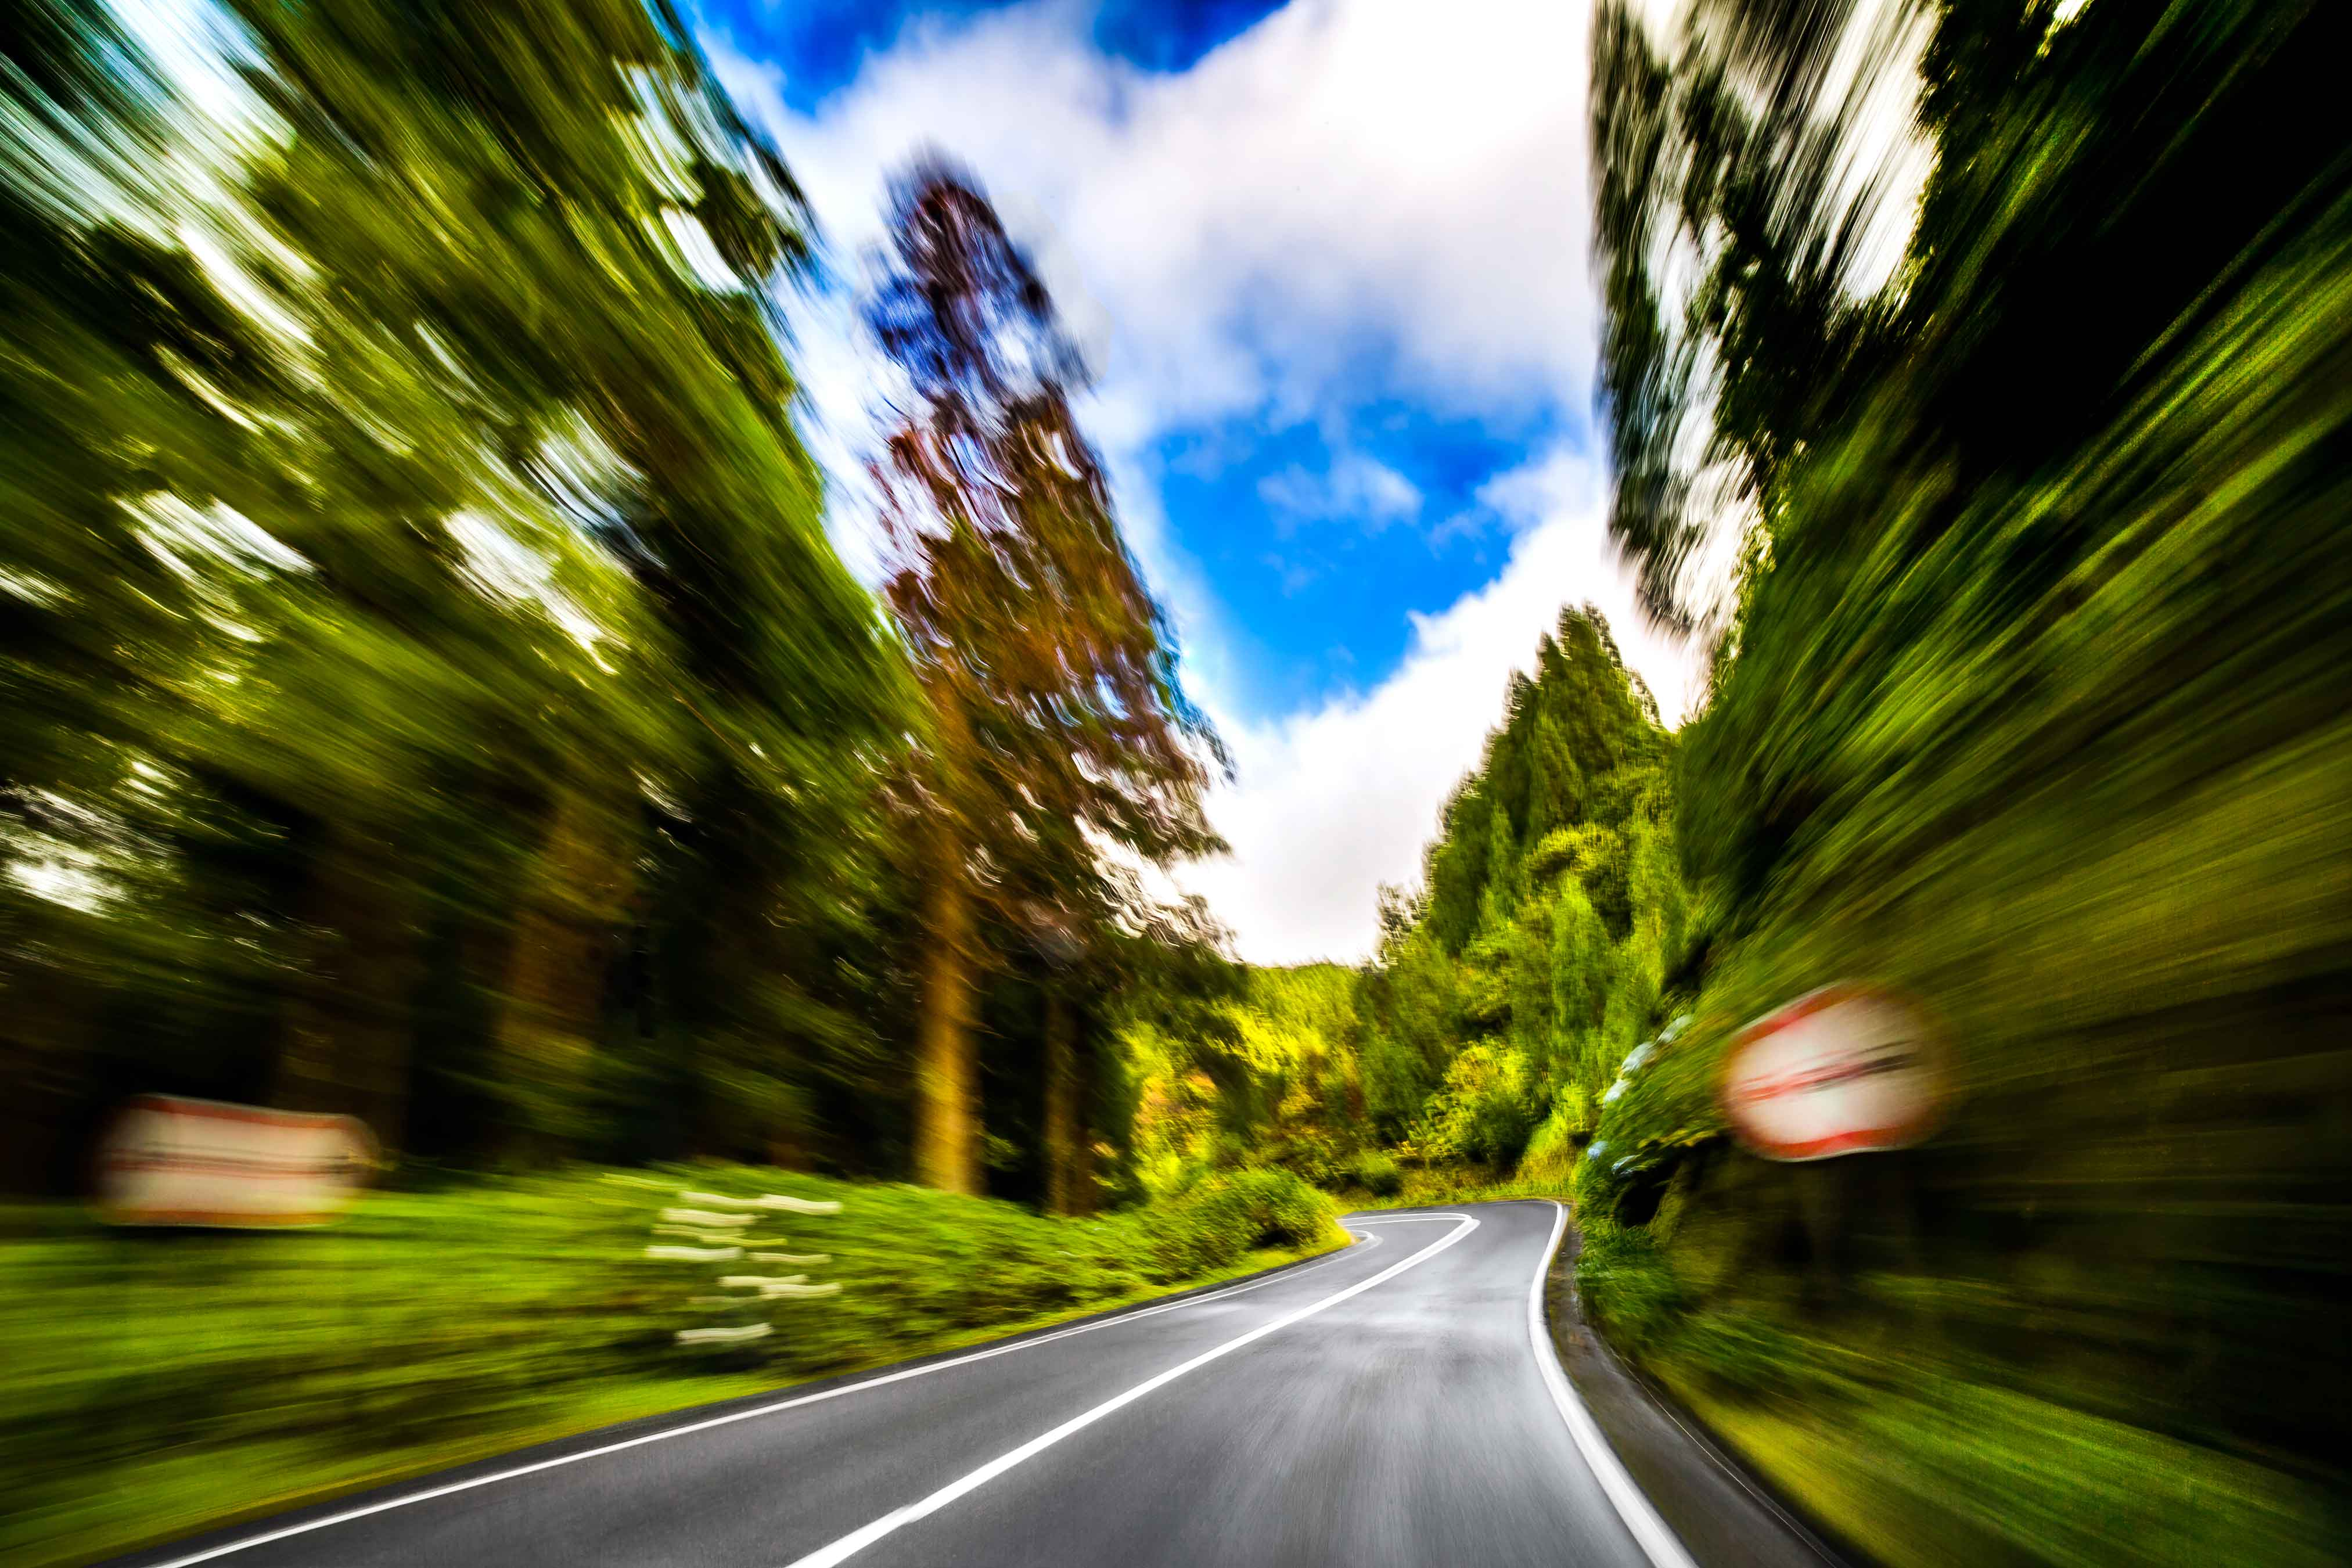 a-photo-taken-with-a-slow-shutter-speed-on-a-highway-in-the-azores-on-sao-miguel-island